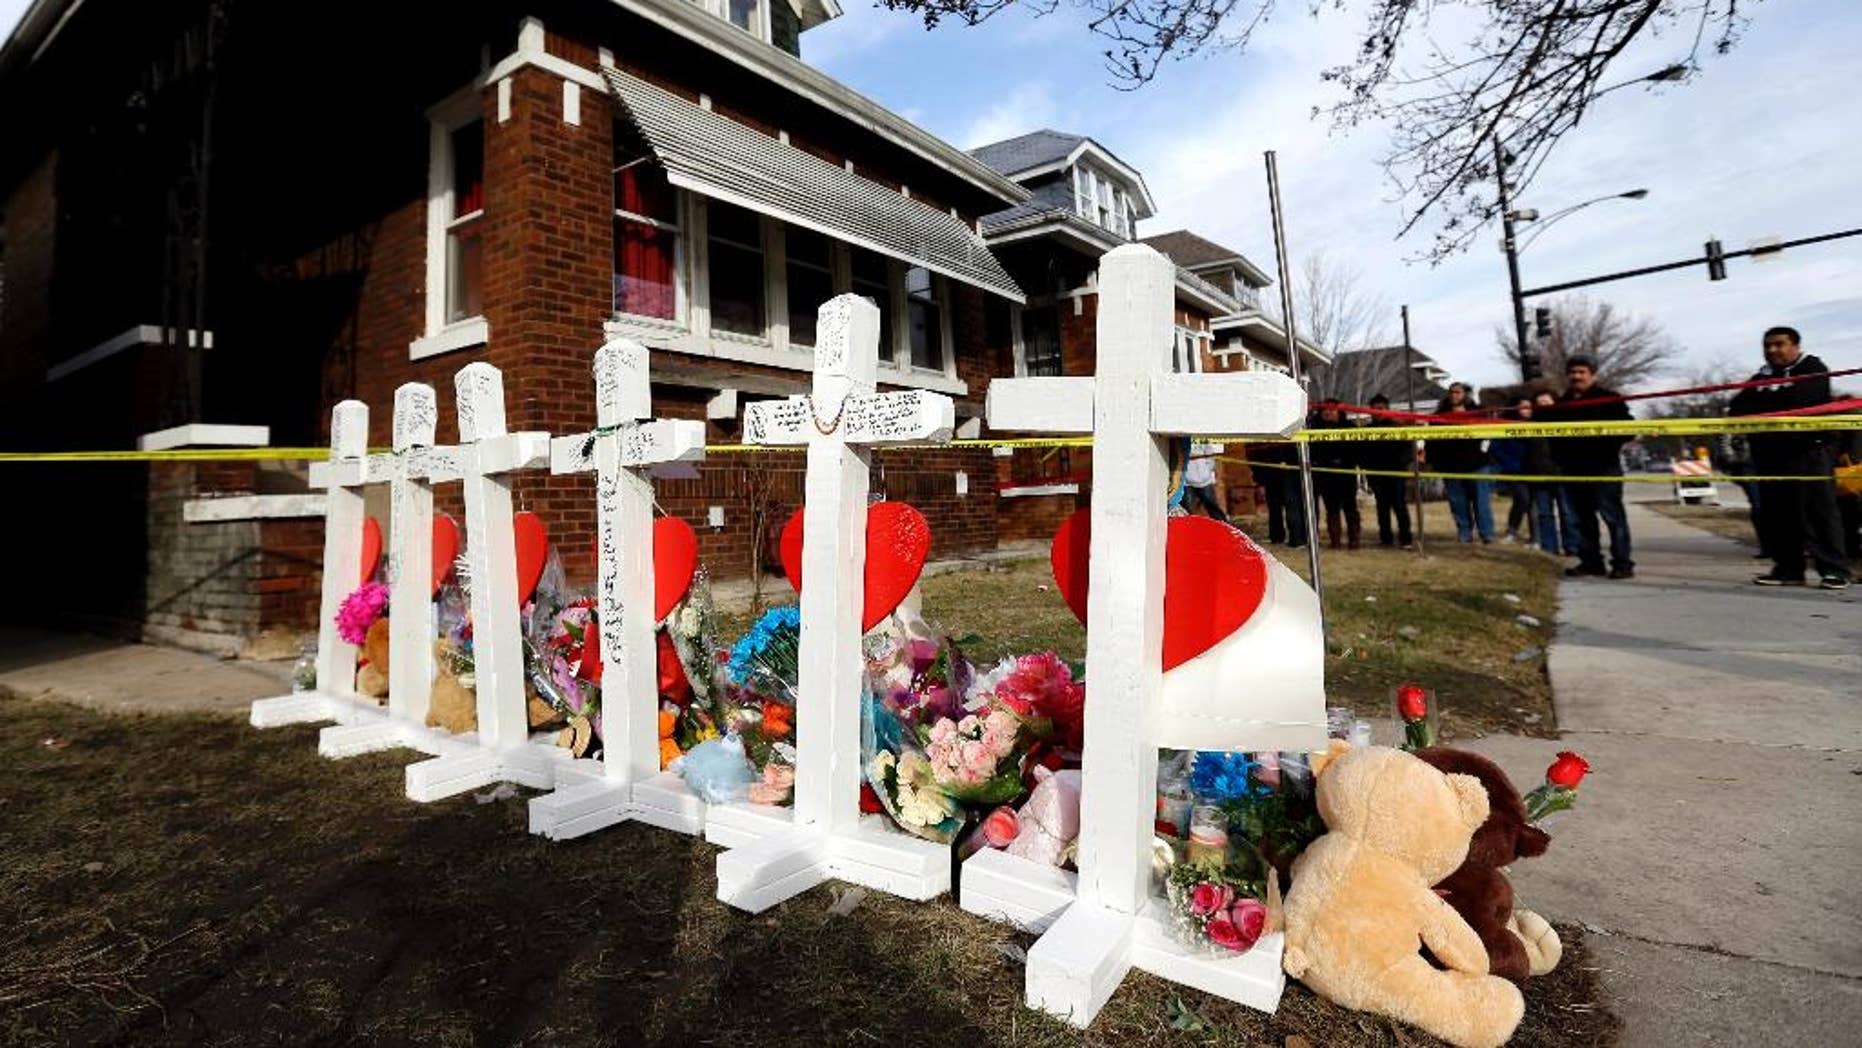 FILE - In this Feb. 7, 2016 file photo, mourners pay their respect outside a home in Chicago where six family members were found dead. On Thursday, May 19, 2016, Chicago police say they have arrested two suspects, a man and woman, in the Feb. 4 slayings. (AP Photo/Nam Y. Huh, File)